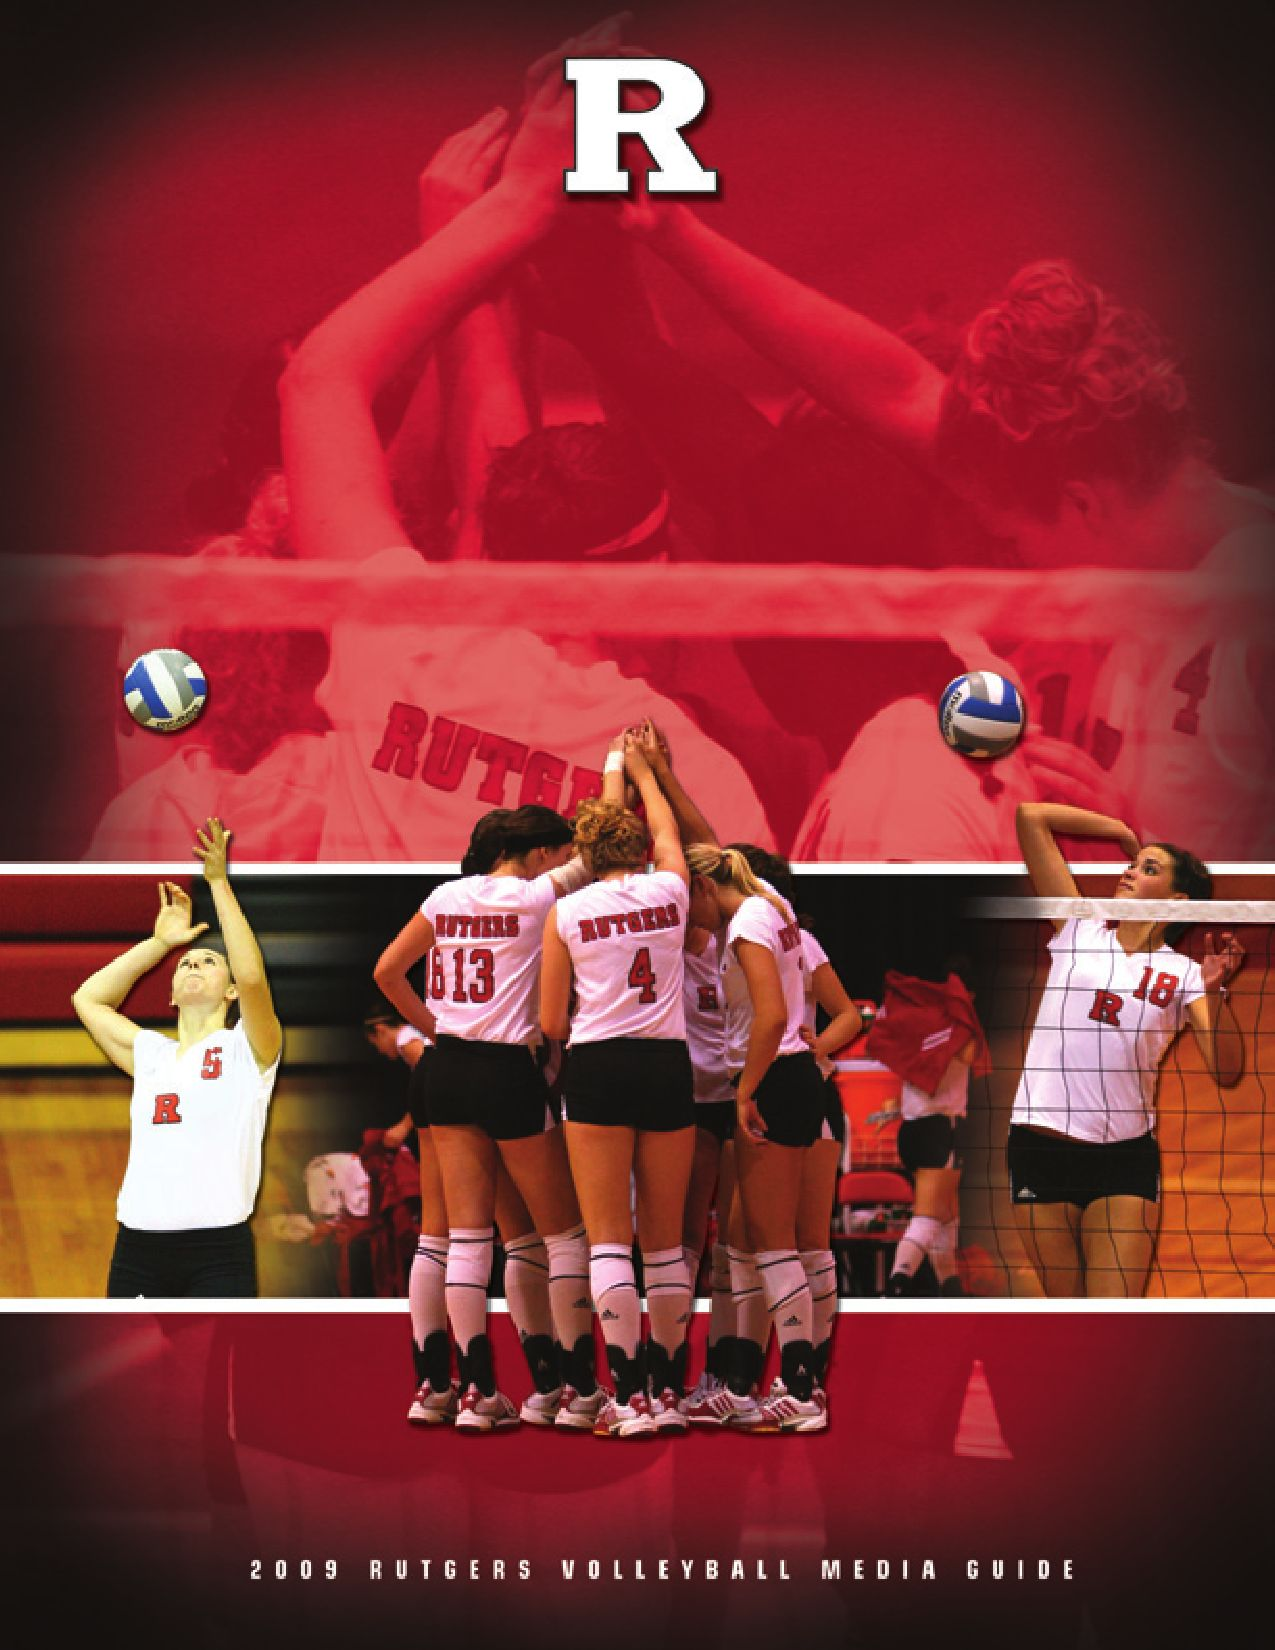 5e48d61ed6f50 2009 Rutgers Women s Volleyball Media Guide by Rutgers Athletics - issuu